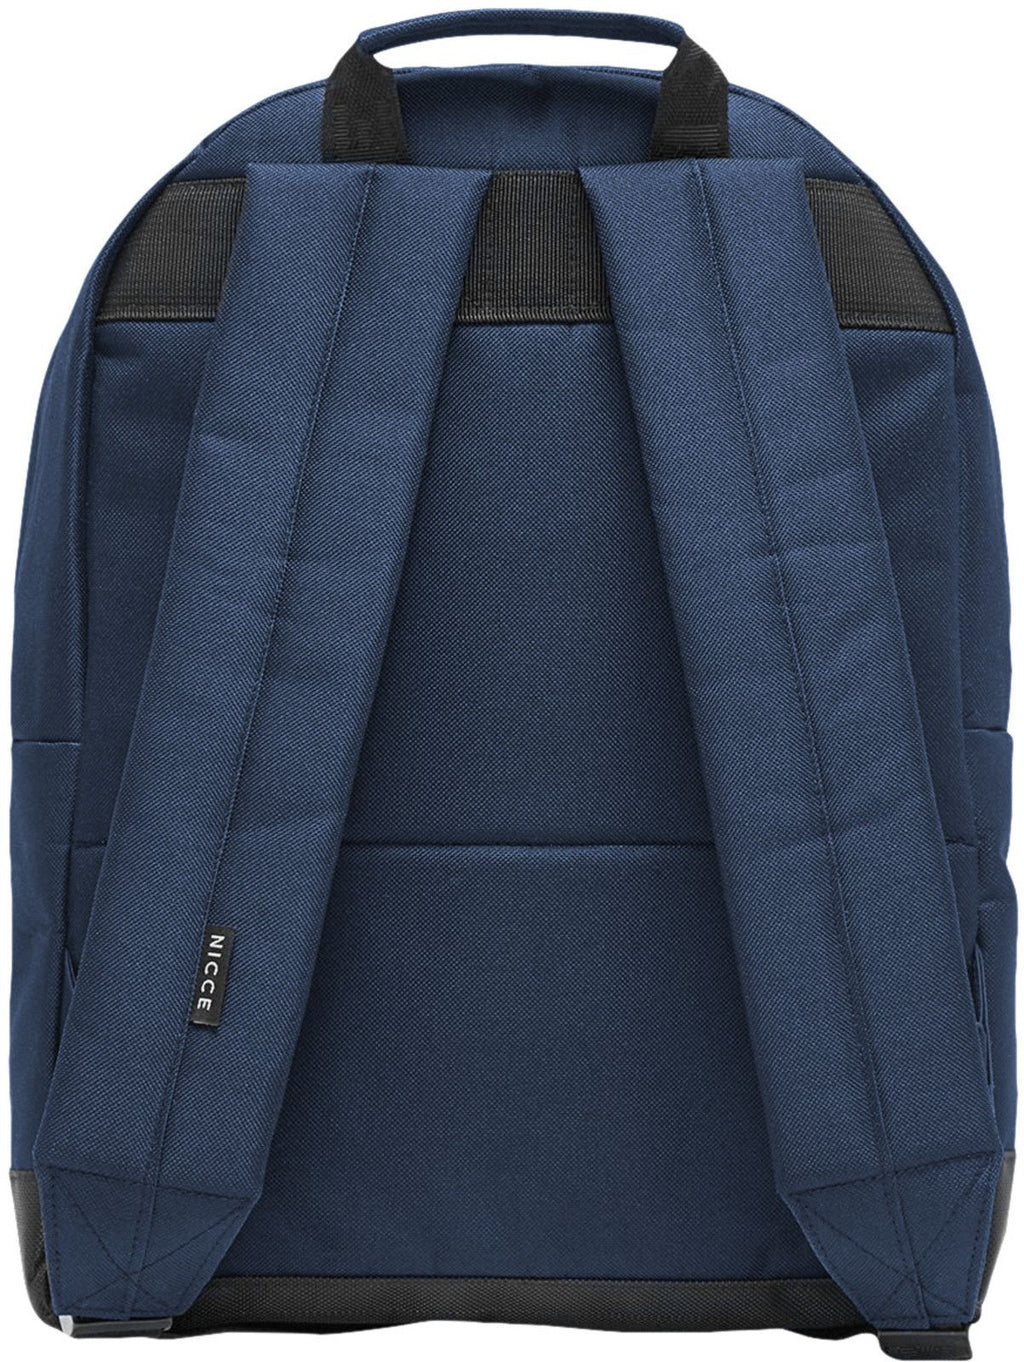 NICCE Raif Backpack Bag And Pencil Case Set Navy